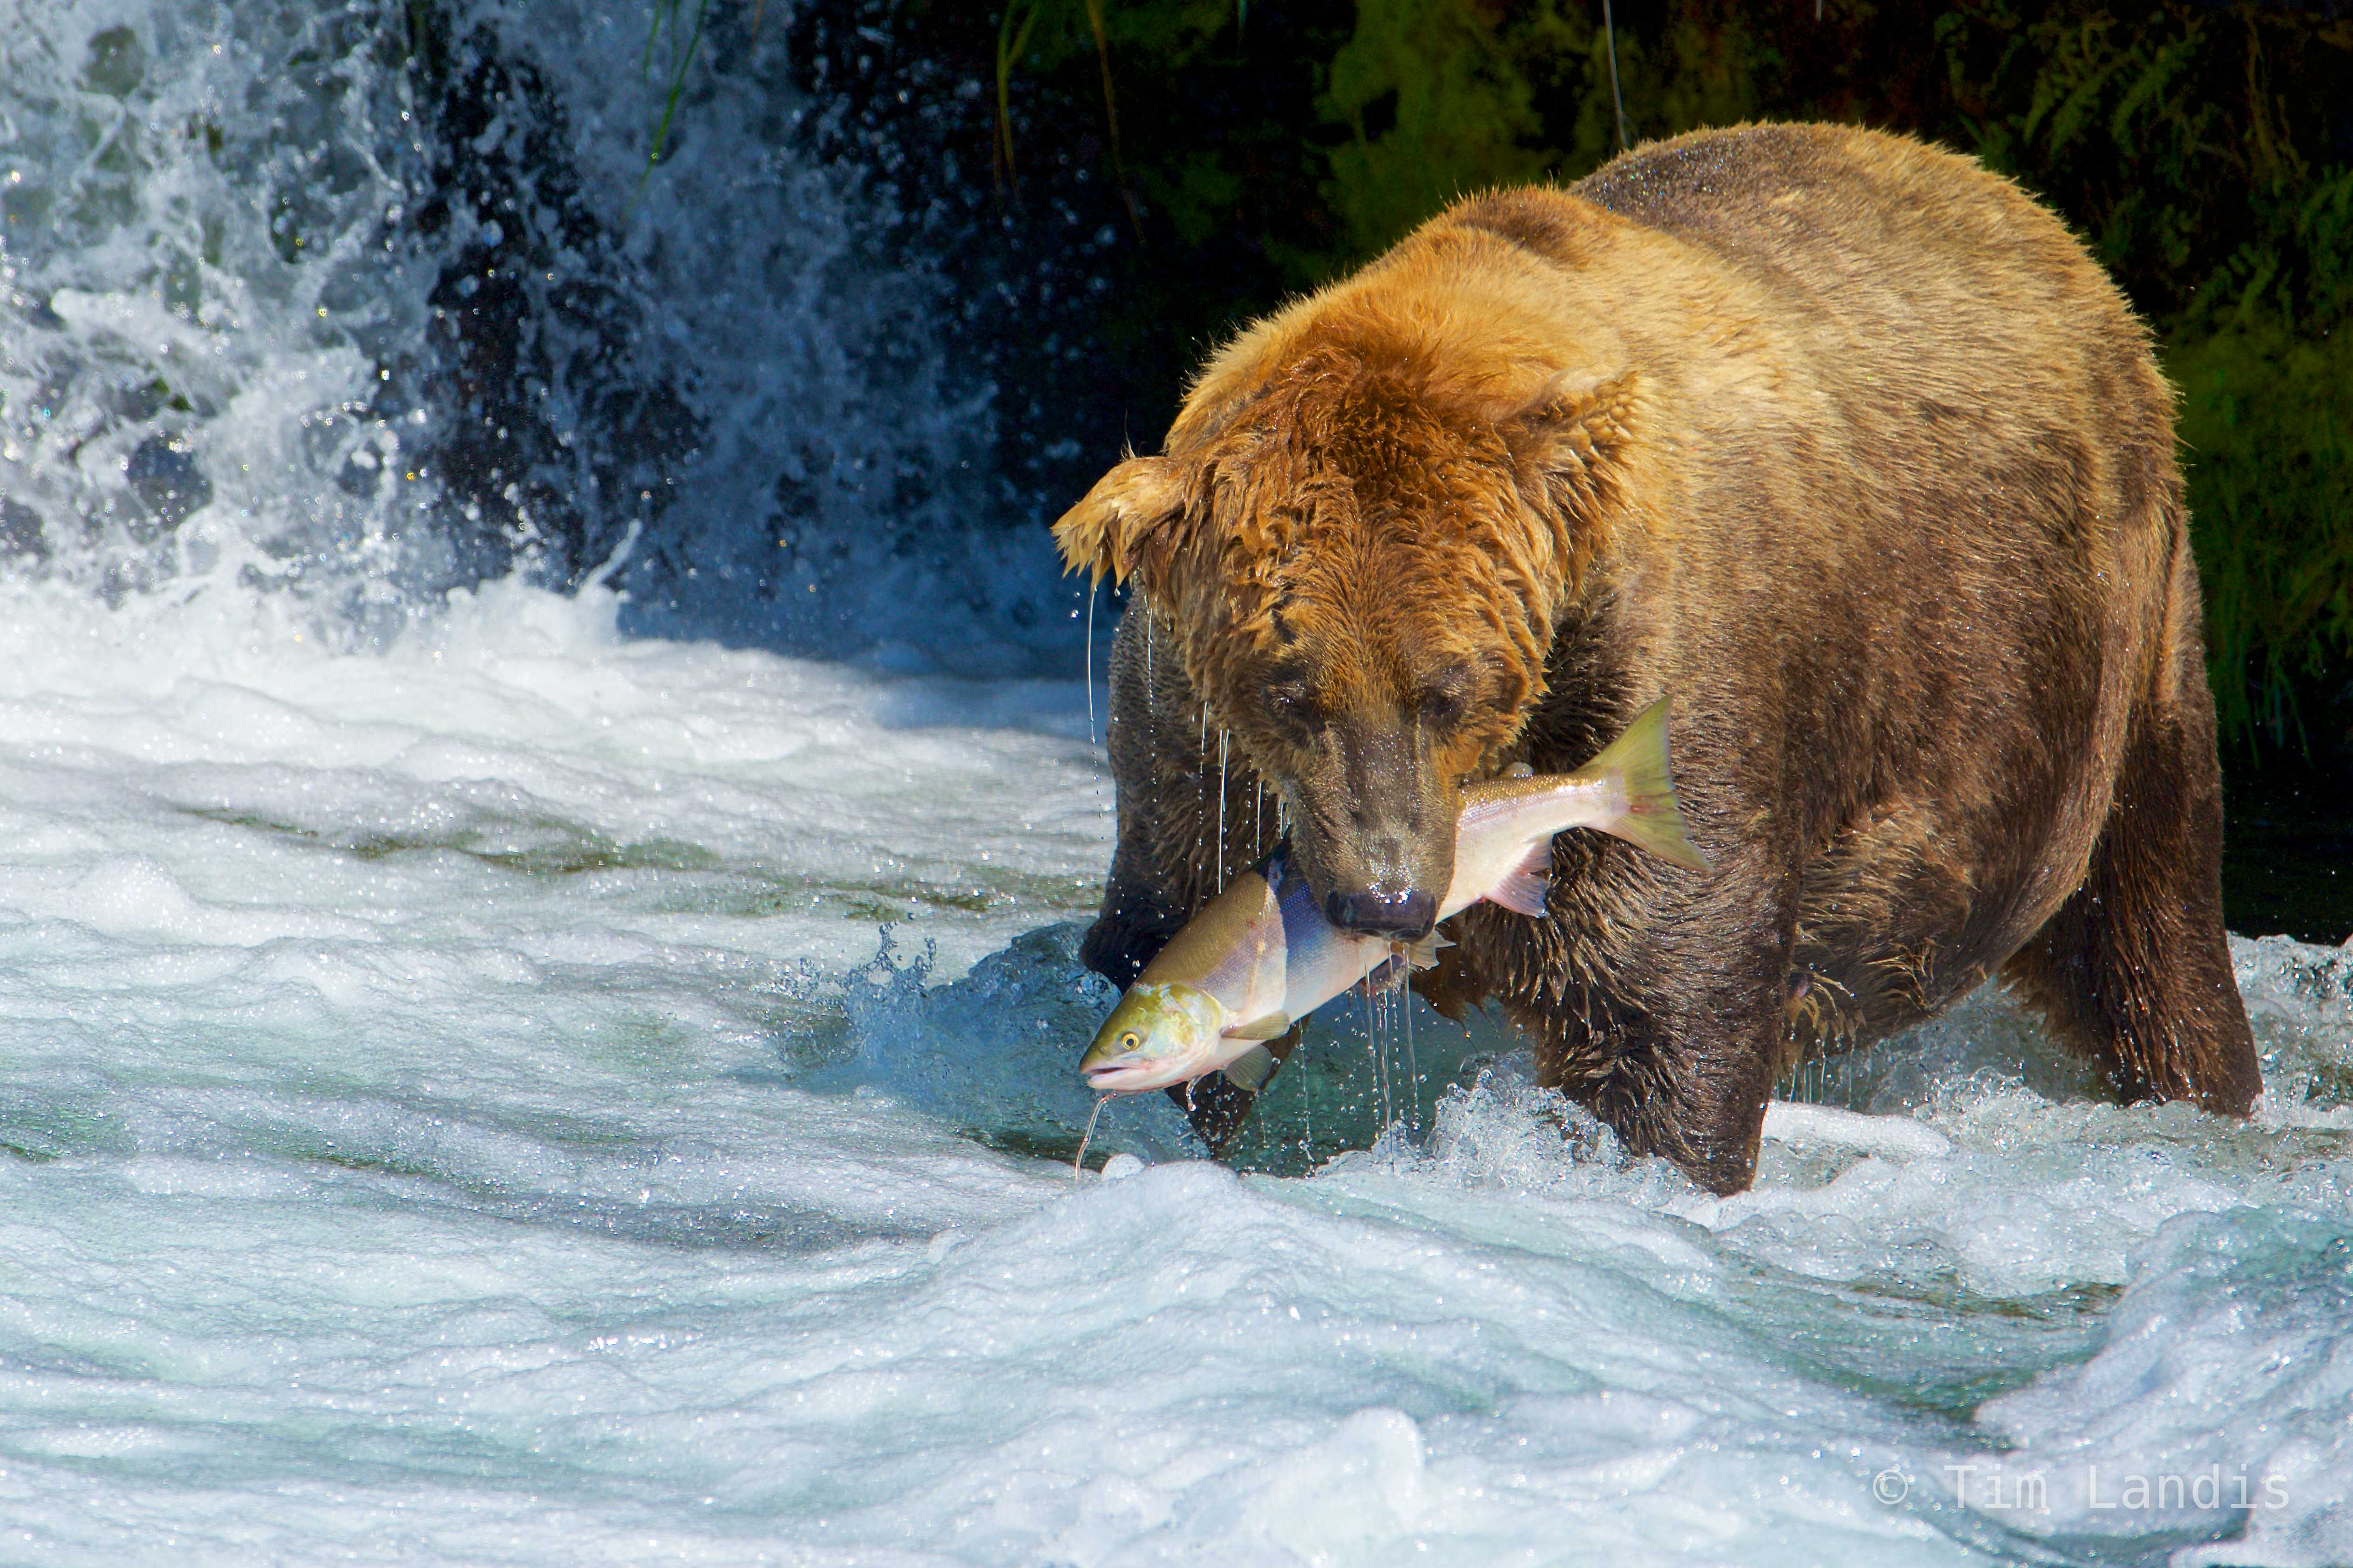 alaskan grizzly bear with salmon, full face view, grizzly with salmon and waterfall, photo